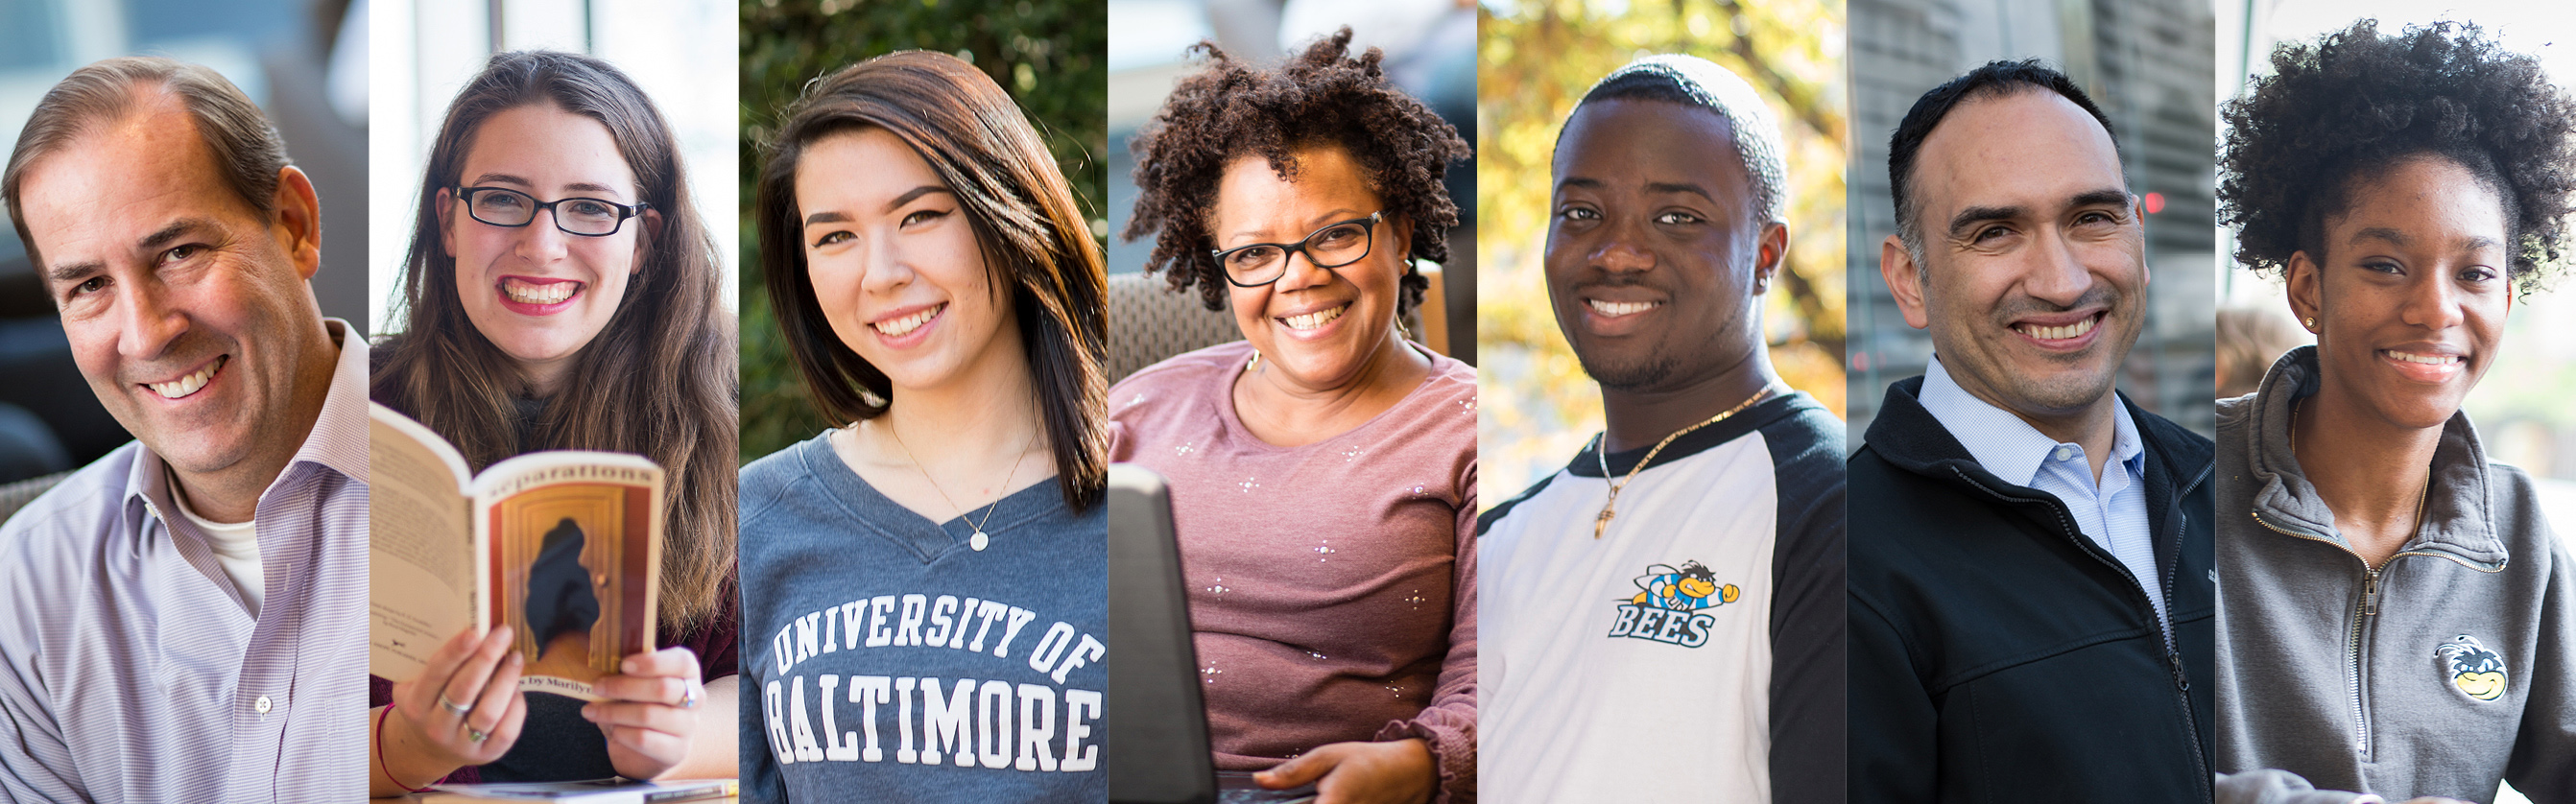 variety of University of baltimore students